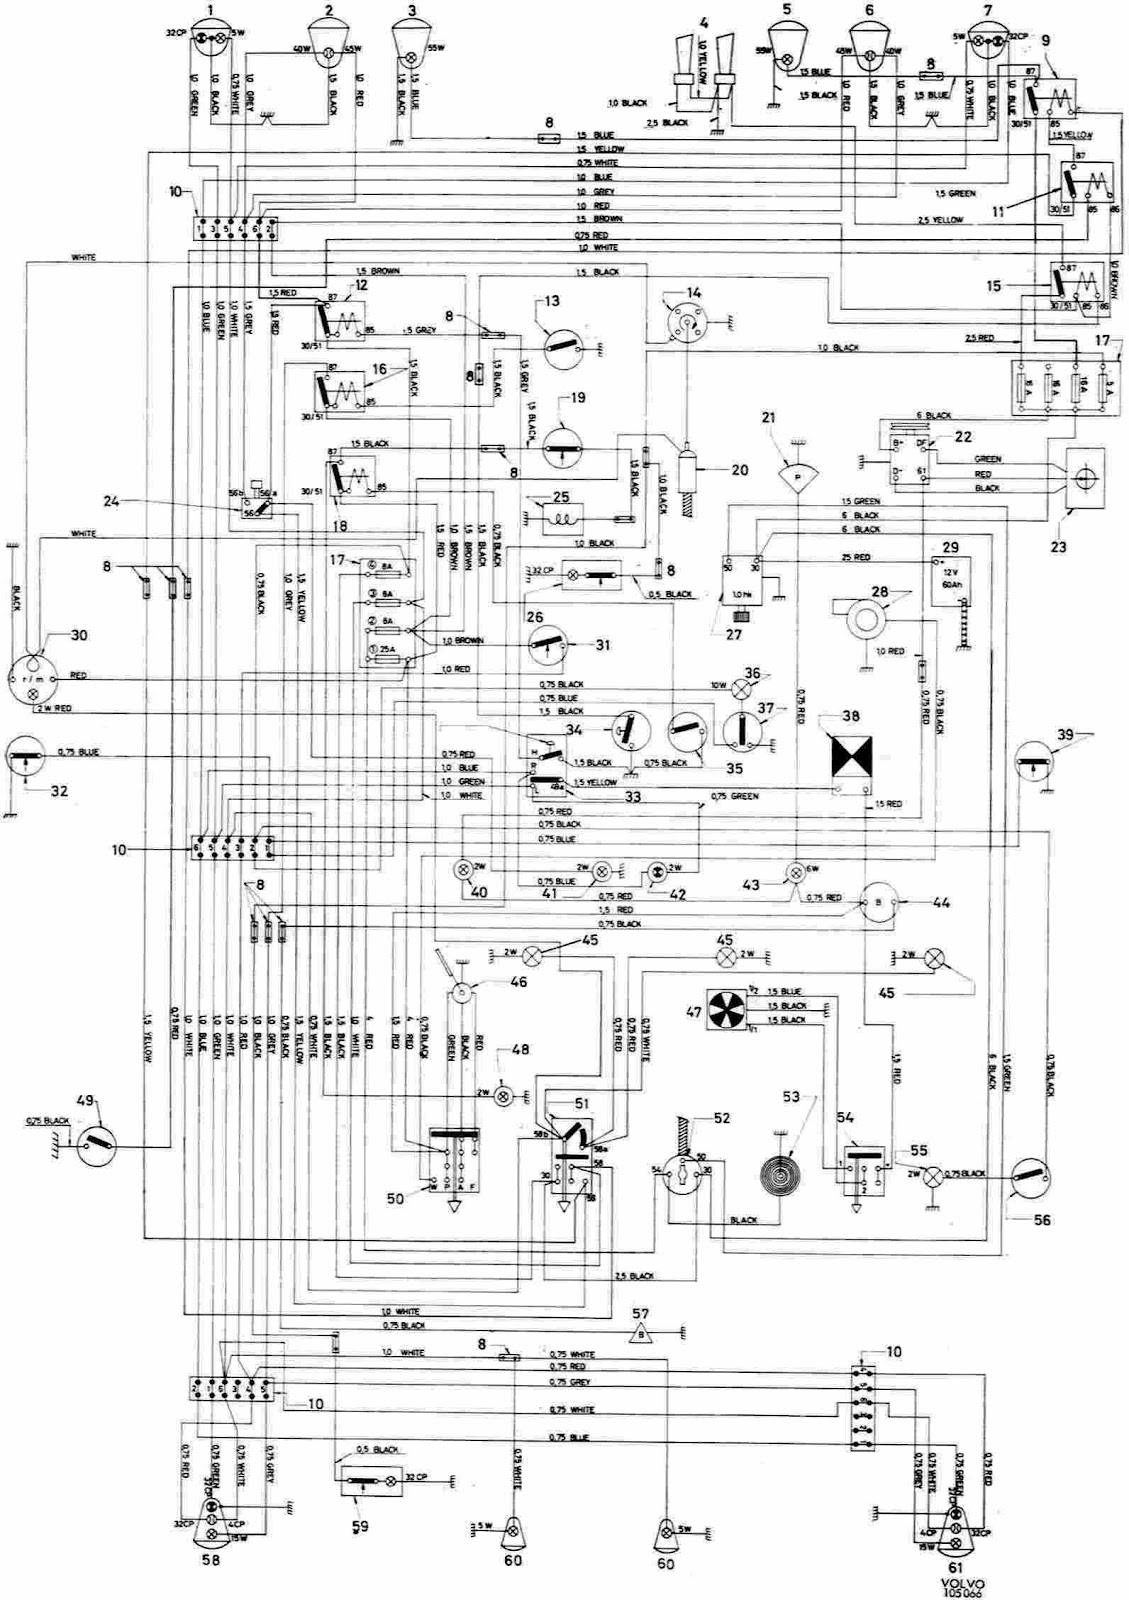 medium resolution of volvo 123 gt complete wiring diagram volvo v70 1998 wiring diagram pdf repair